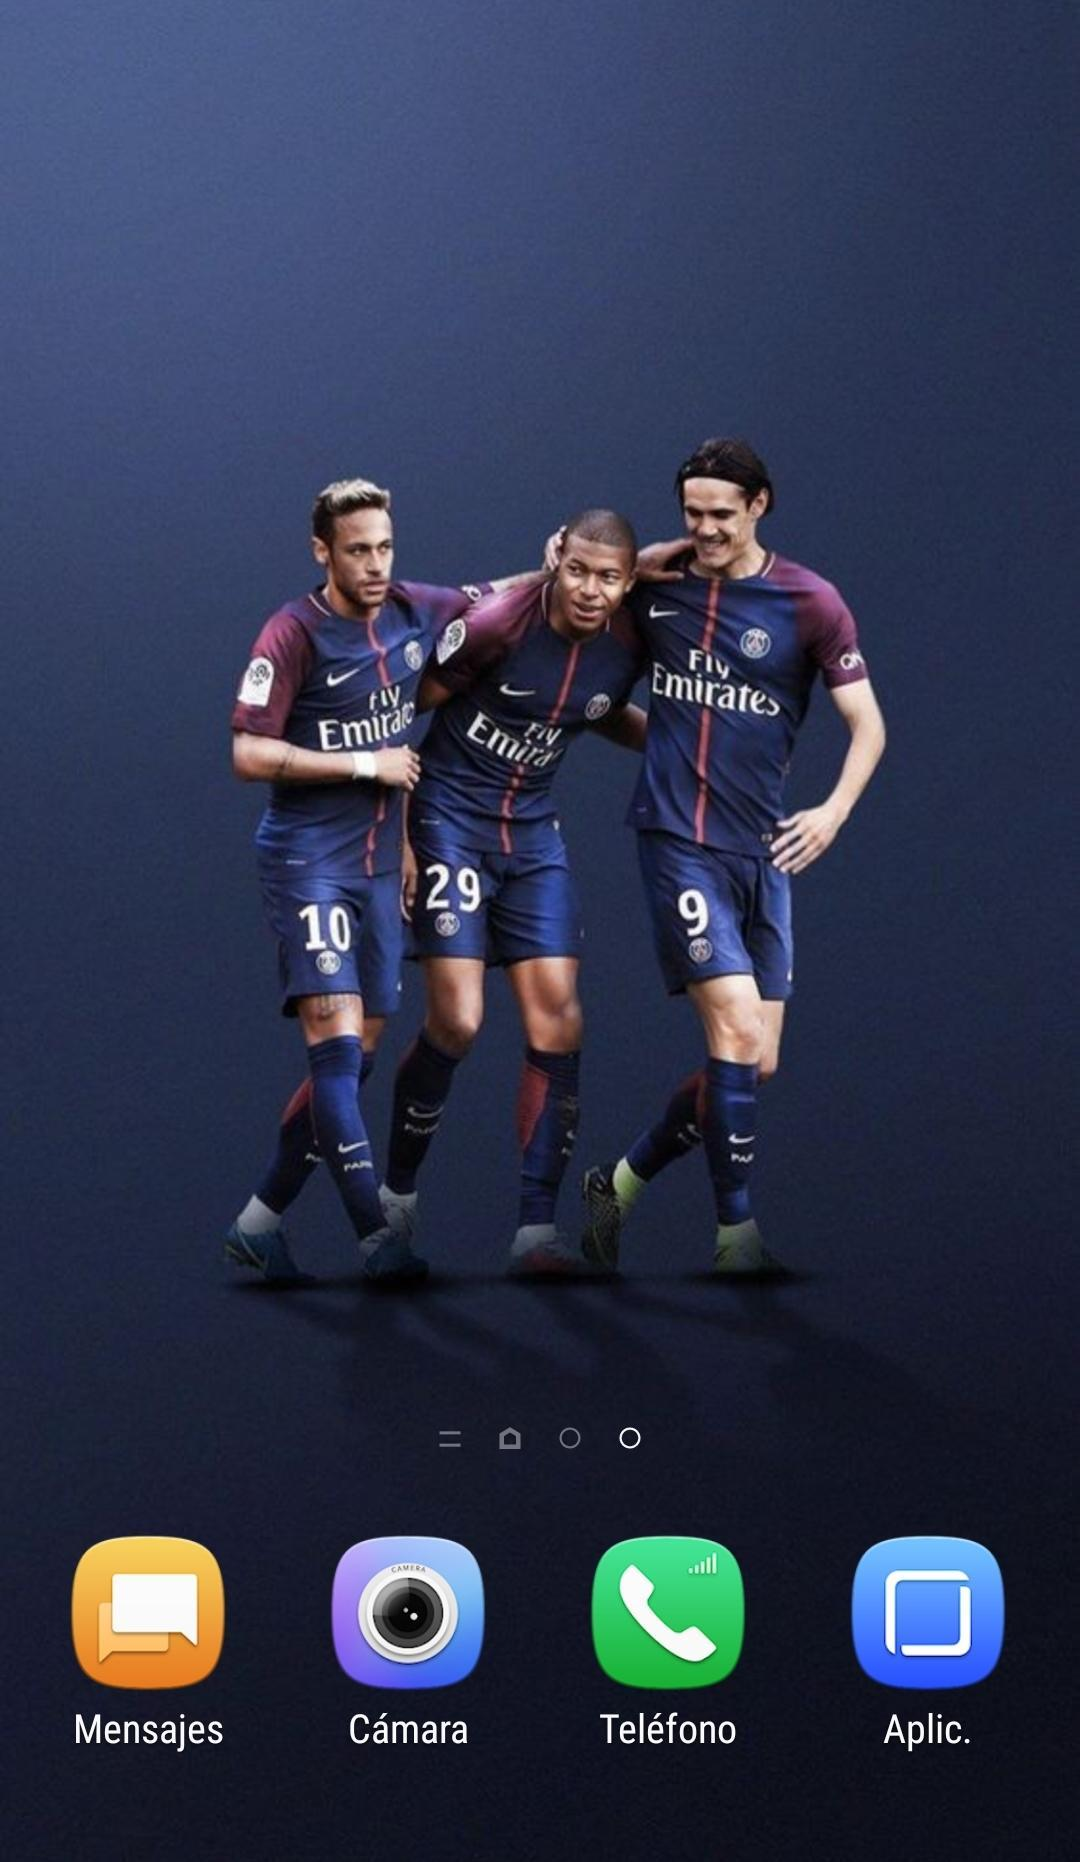 Paris Saint Germain Wallpapers Hd For Android Apk Download